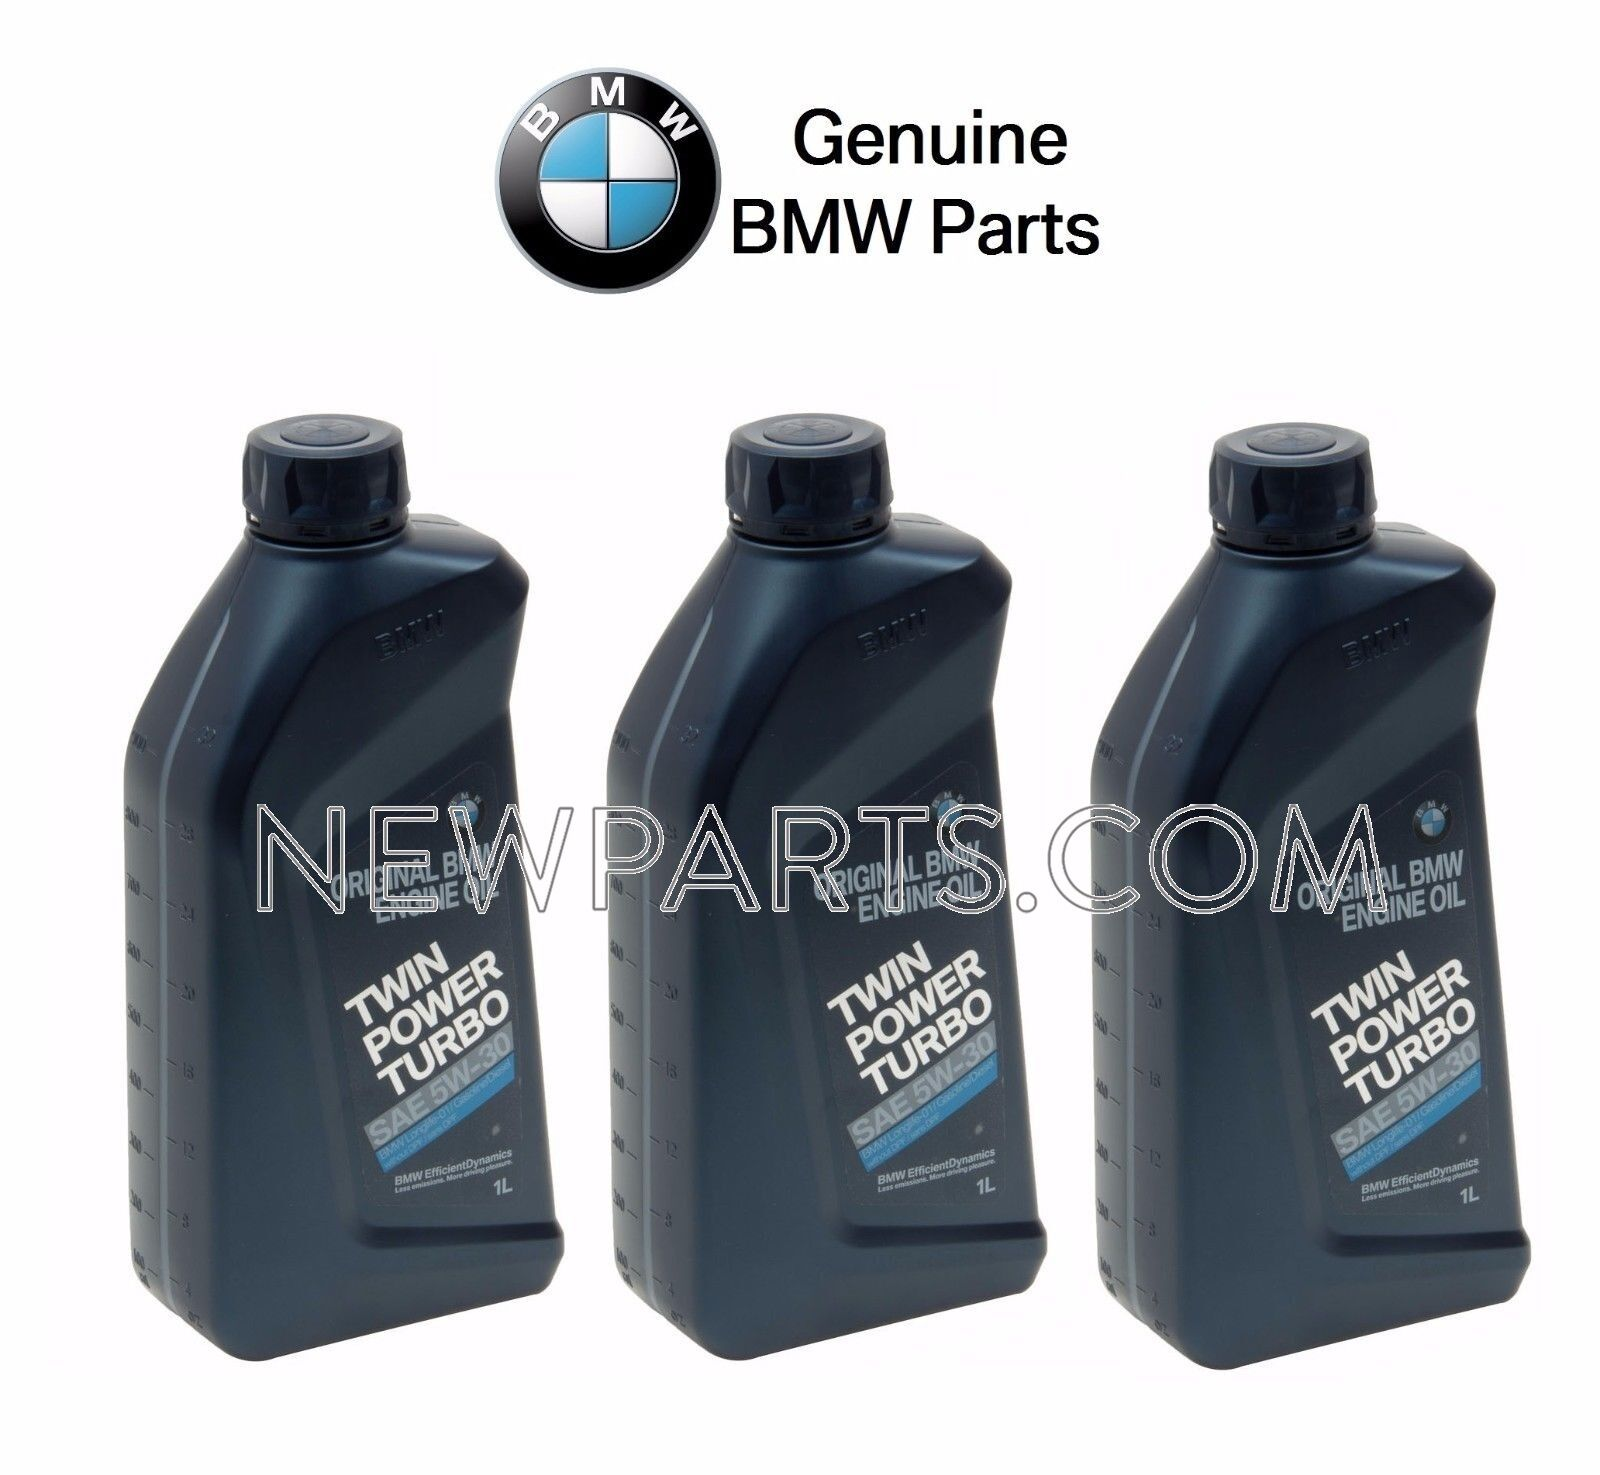 NEW BMW 5w-30 High Performance Fully Synthetic Engine Oil